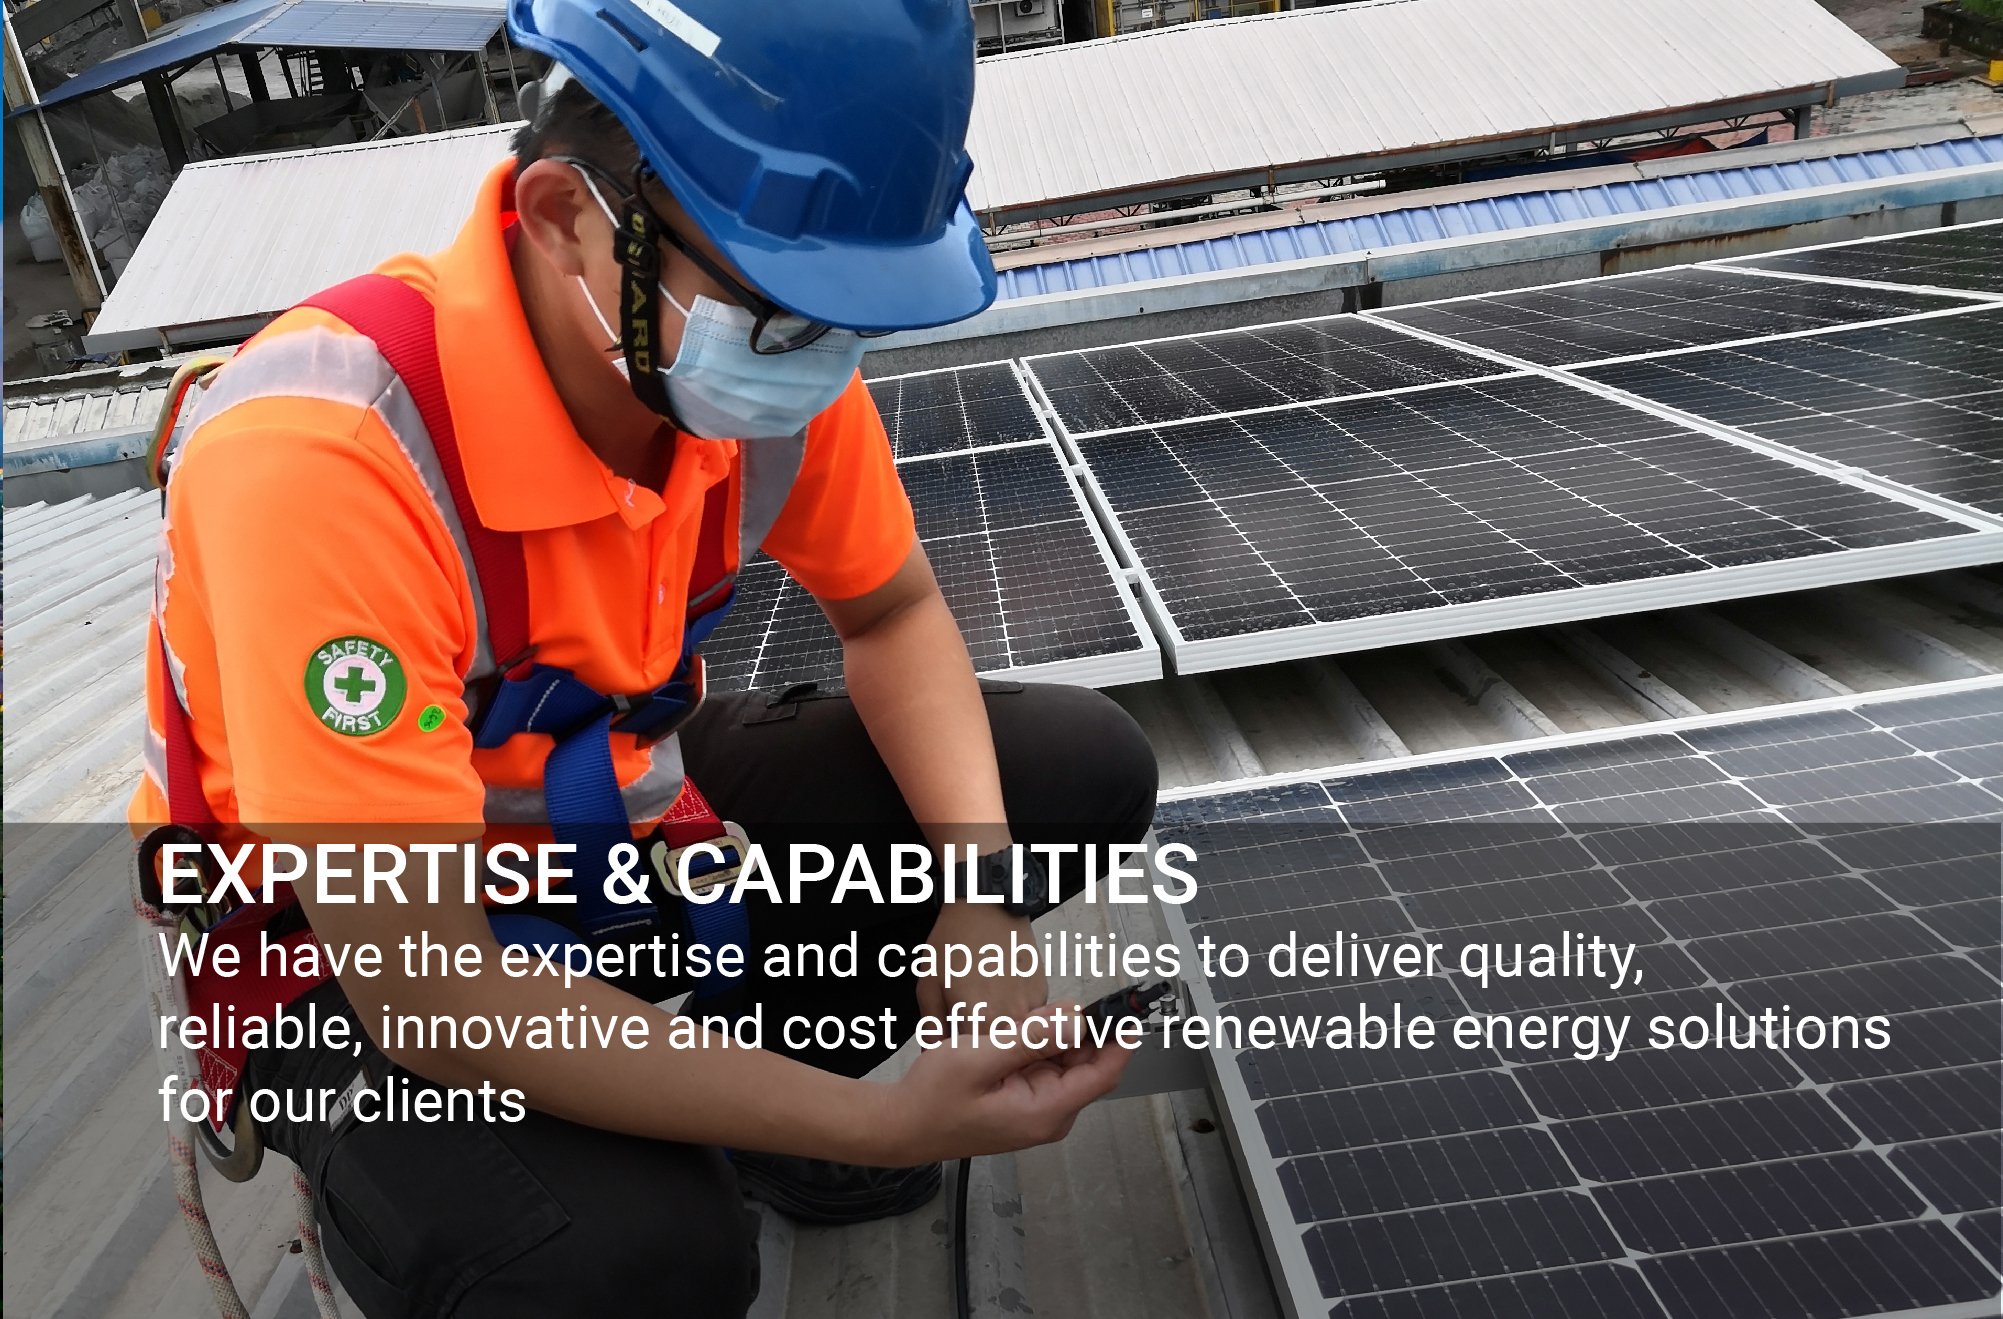 We have the expertise and capabilities to deliver quality, reliable, innovative and cost effective renewable energy solutions for our clients